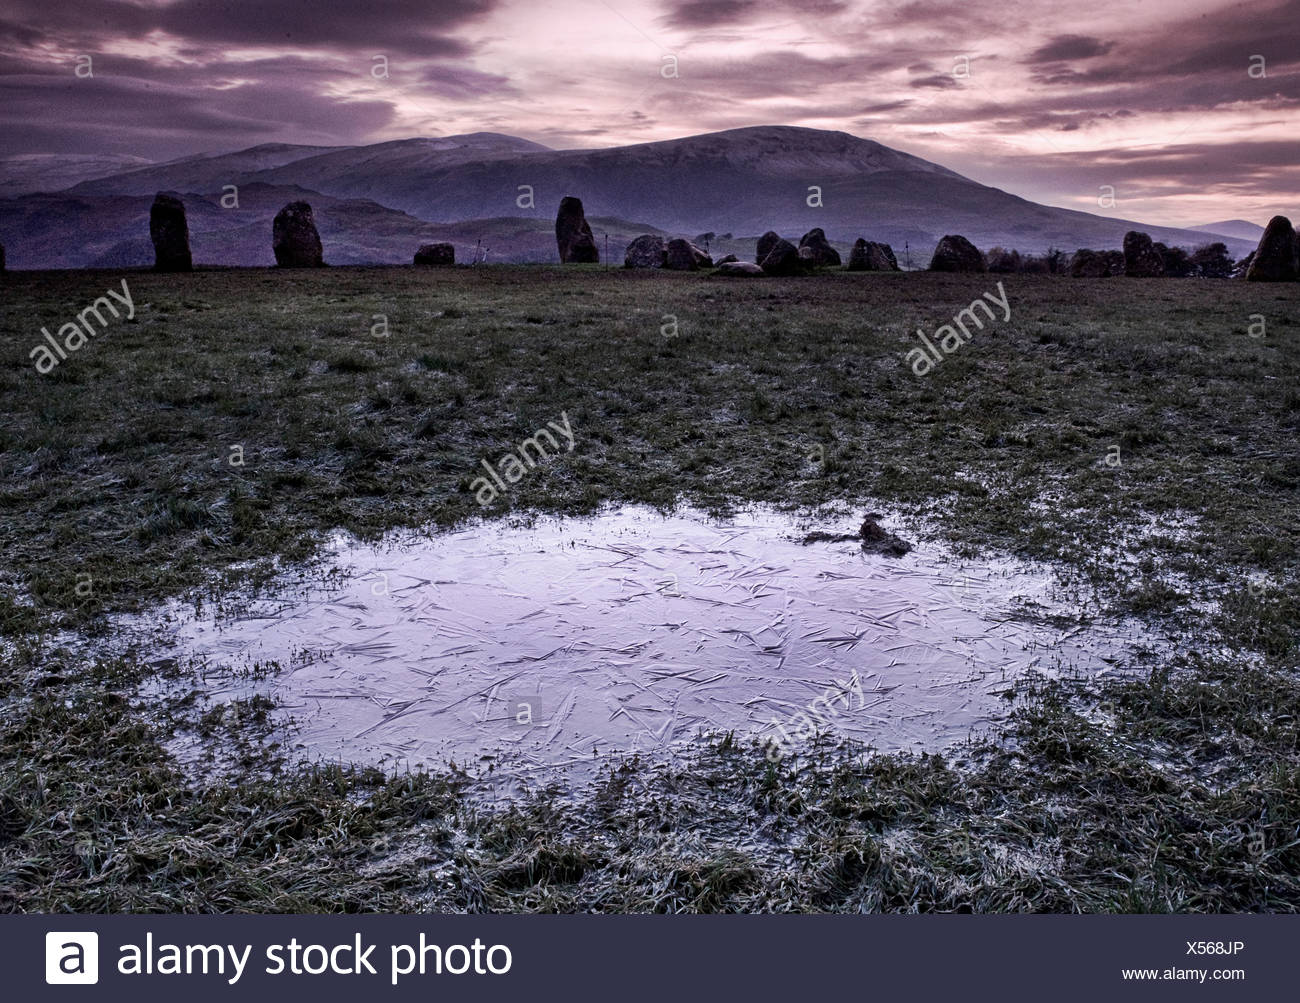 A frozen puddle in a field with nearby standing stones and mountains in the distance - Stock Image